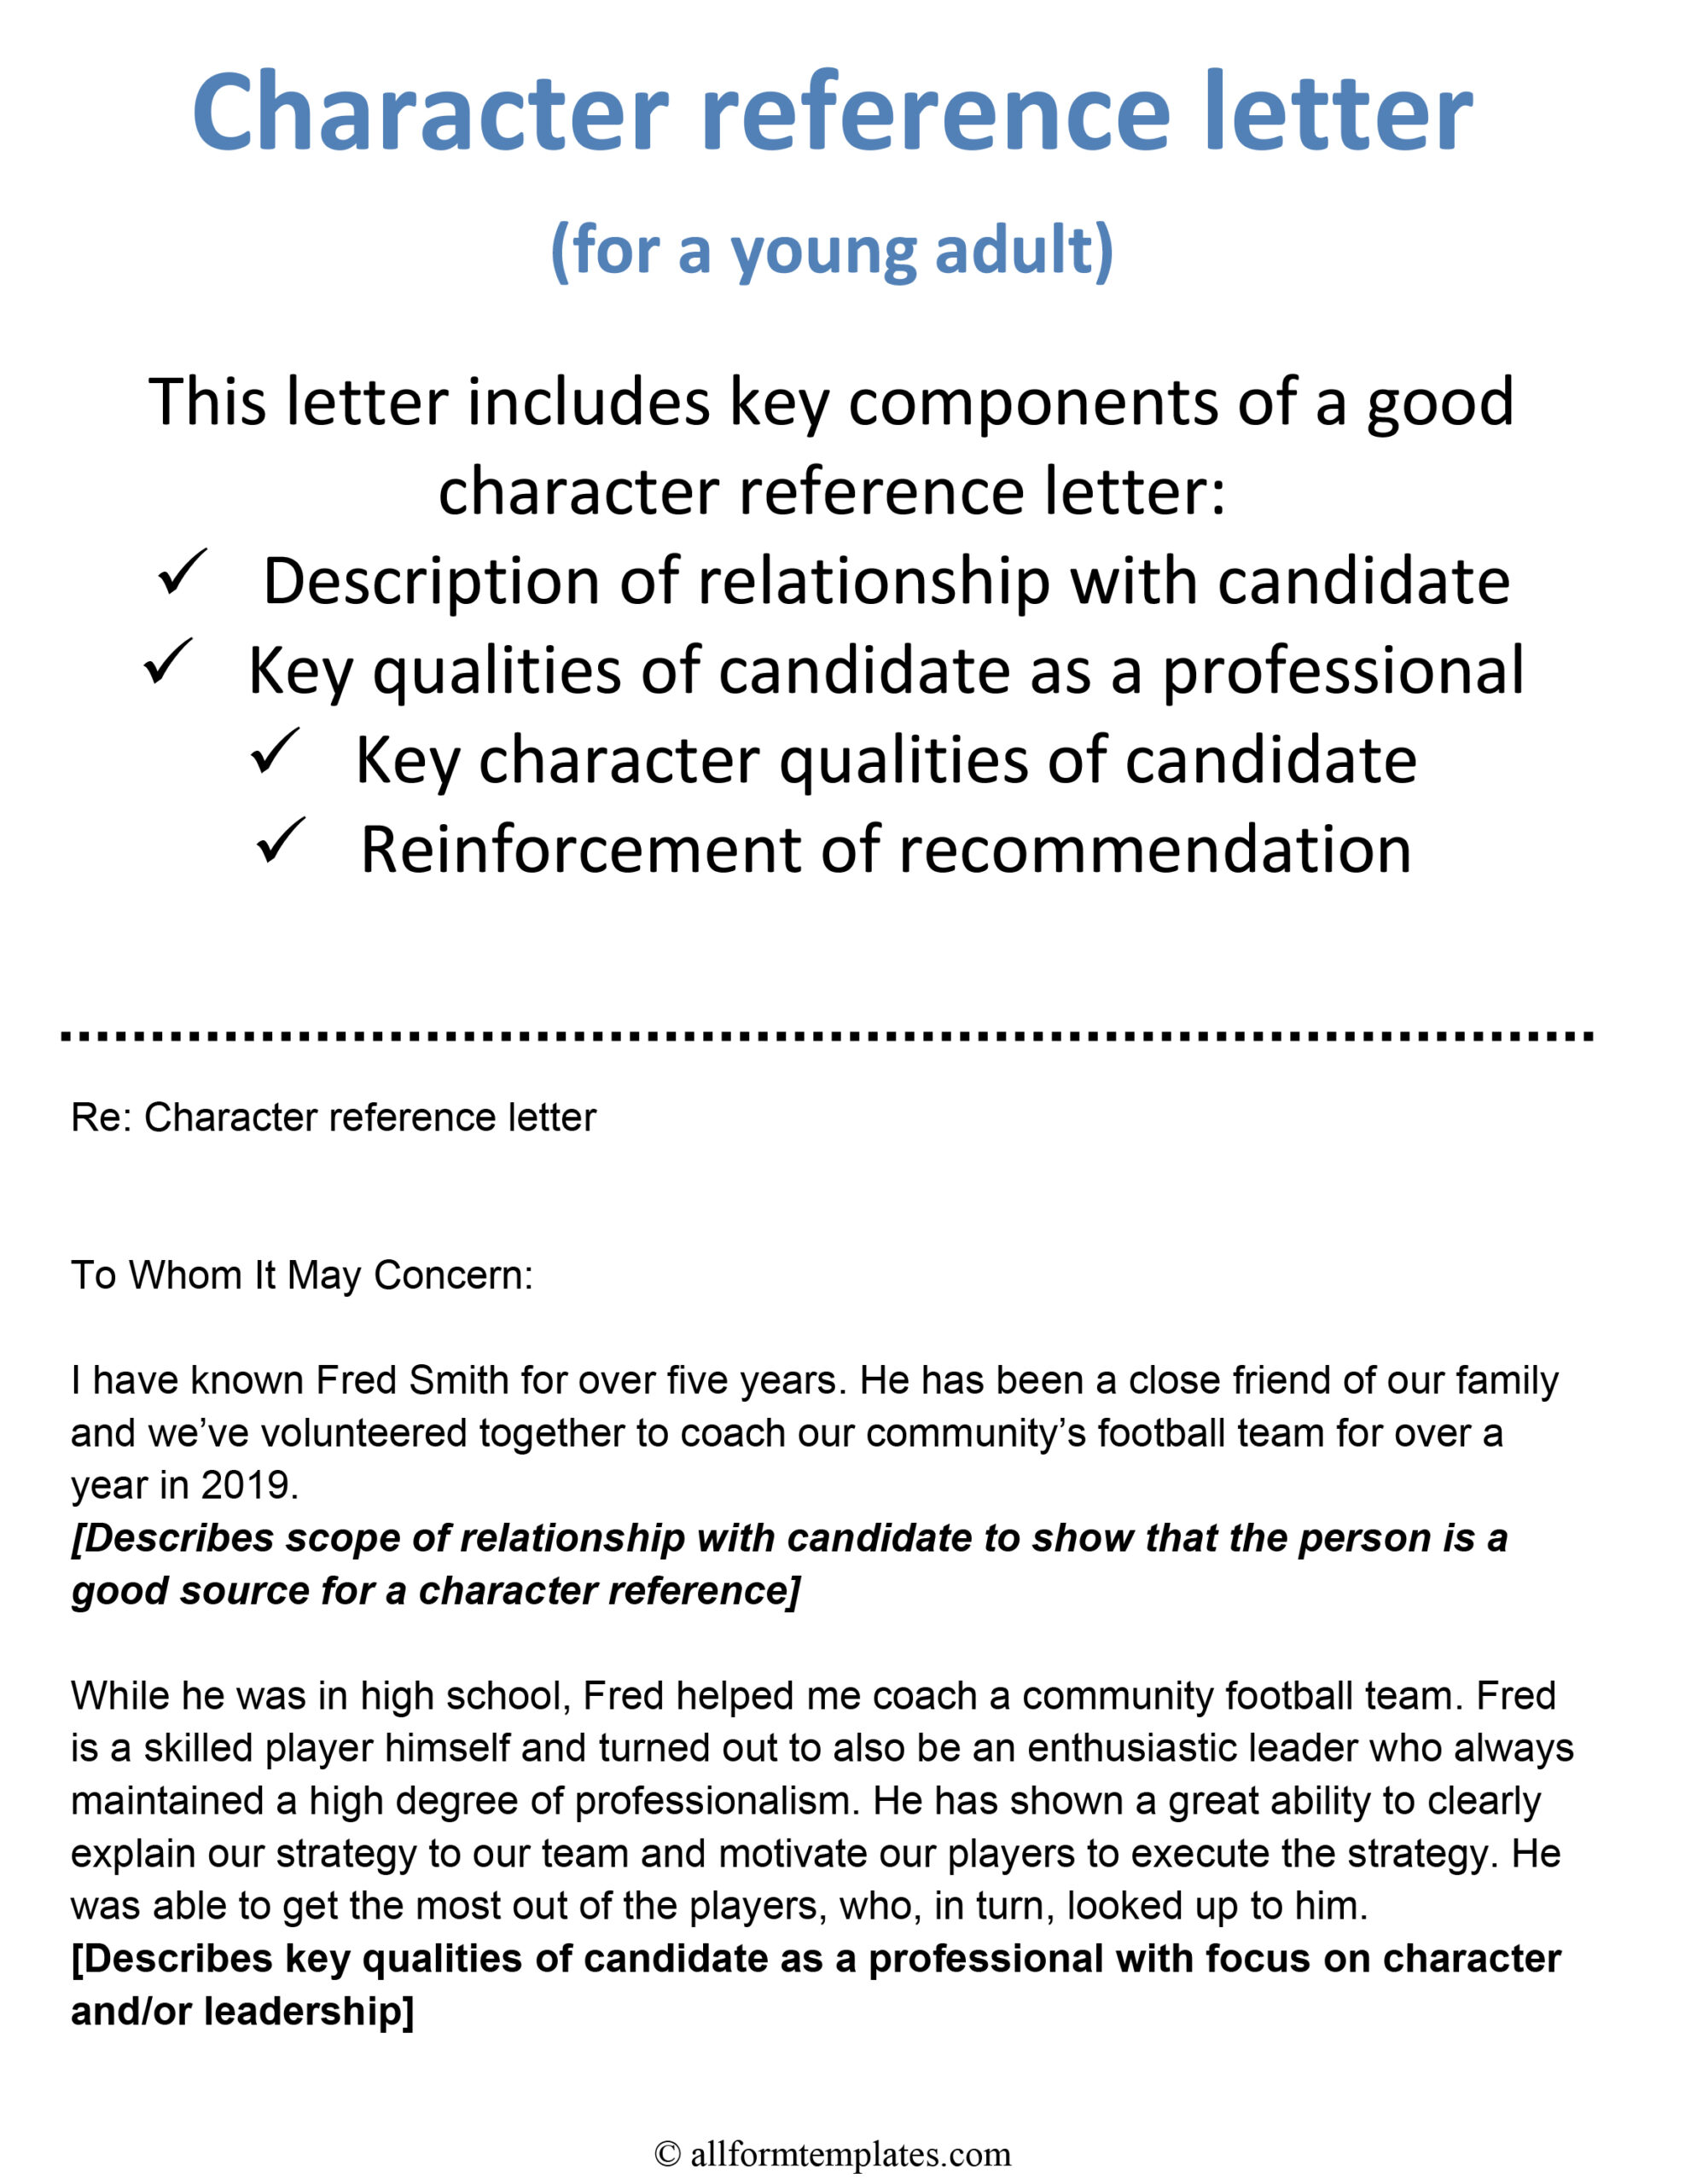 Character Reference Letter Template Word from www.allformtemplates.com